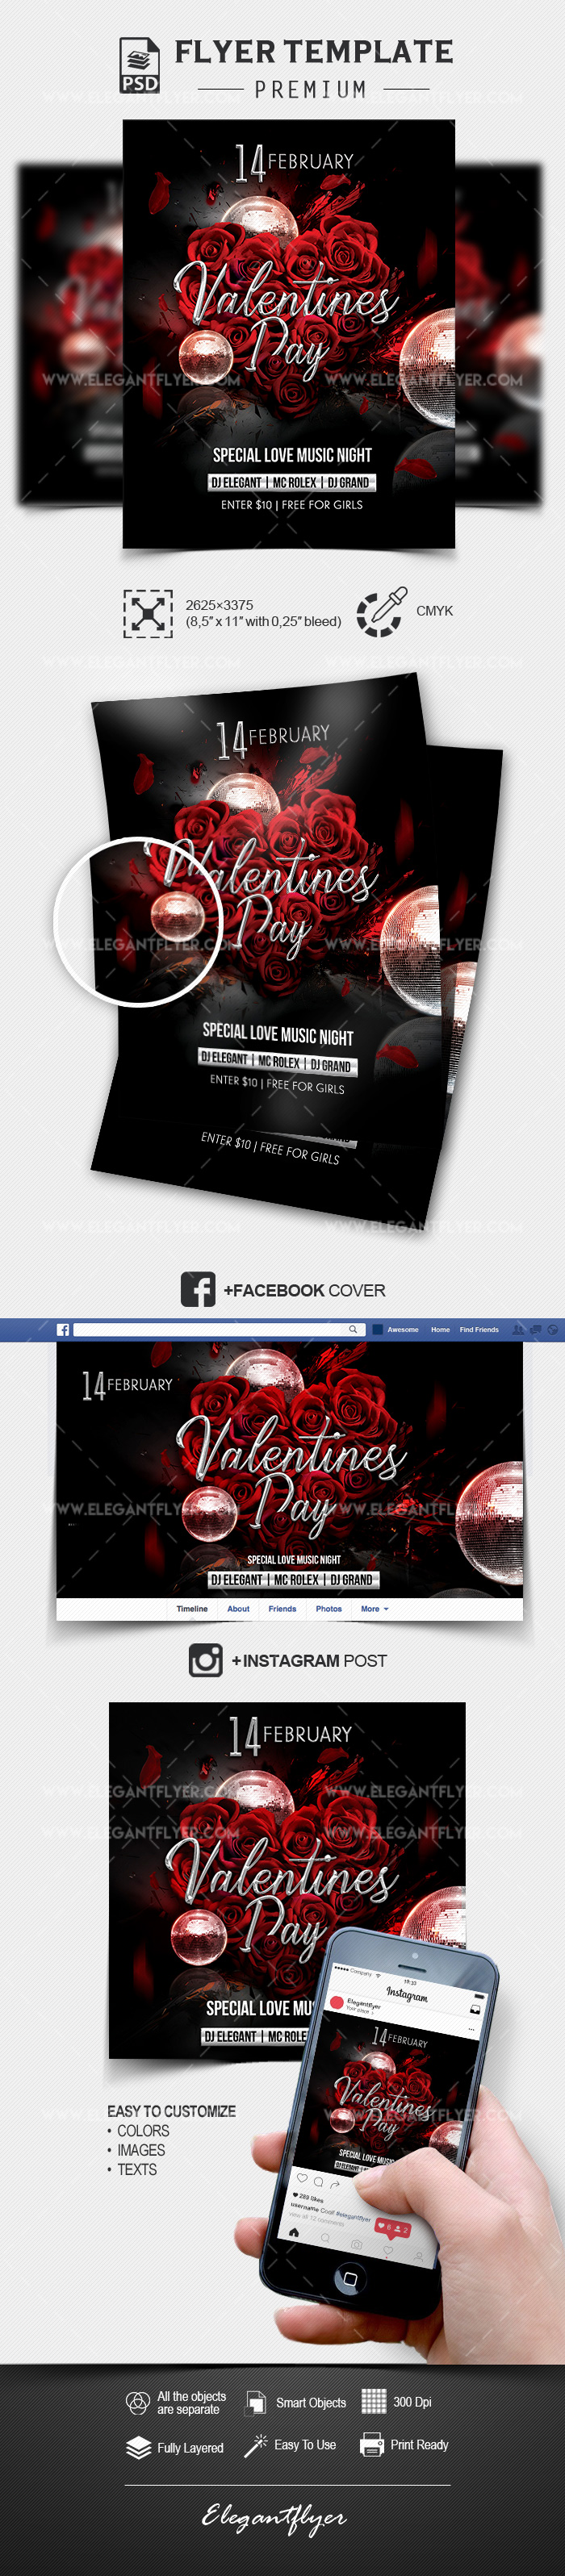 St. Valentine's Day Party – Flyer Template in PSD